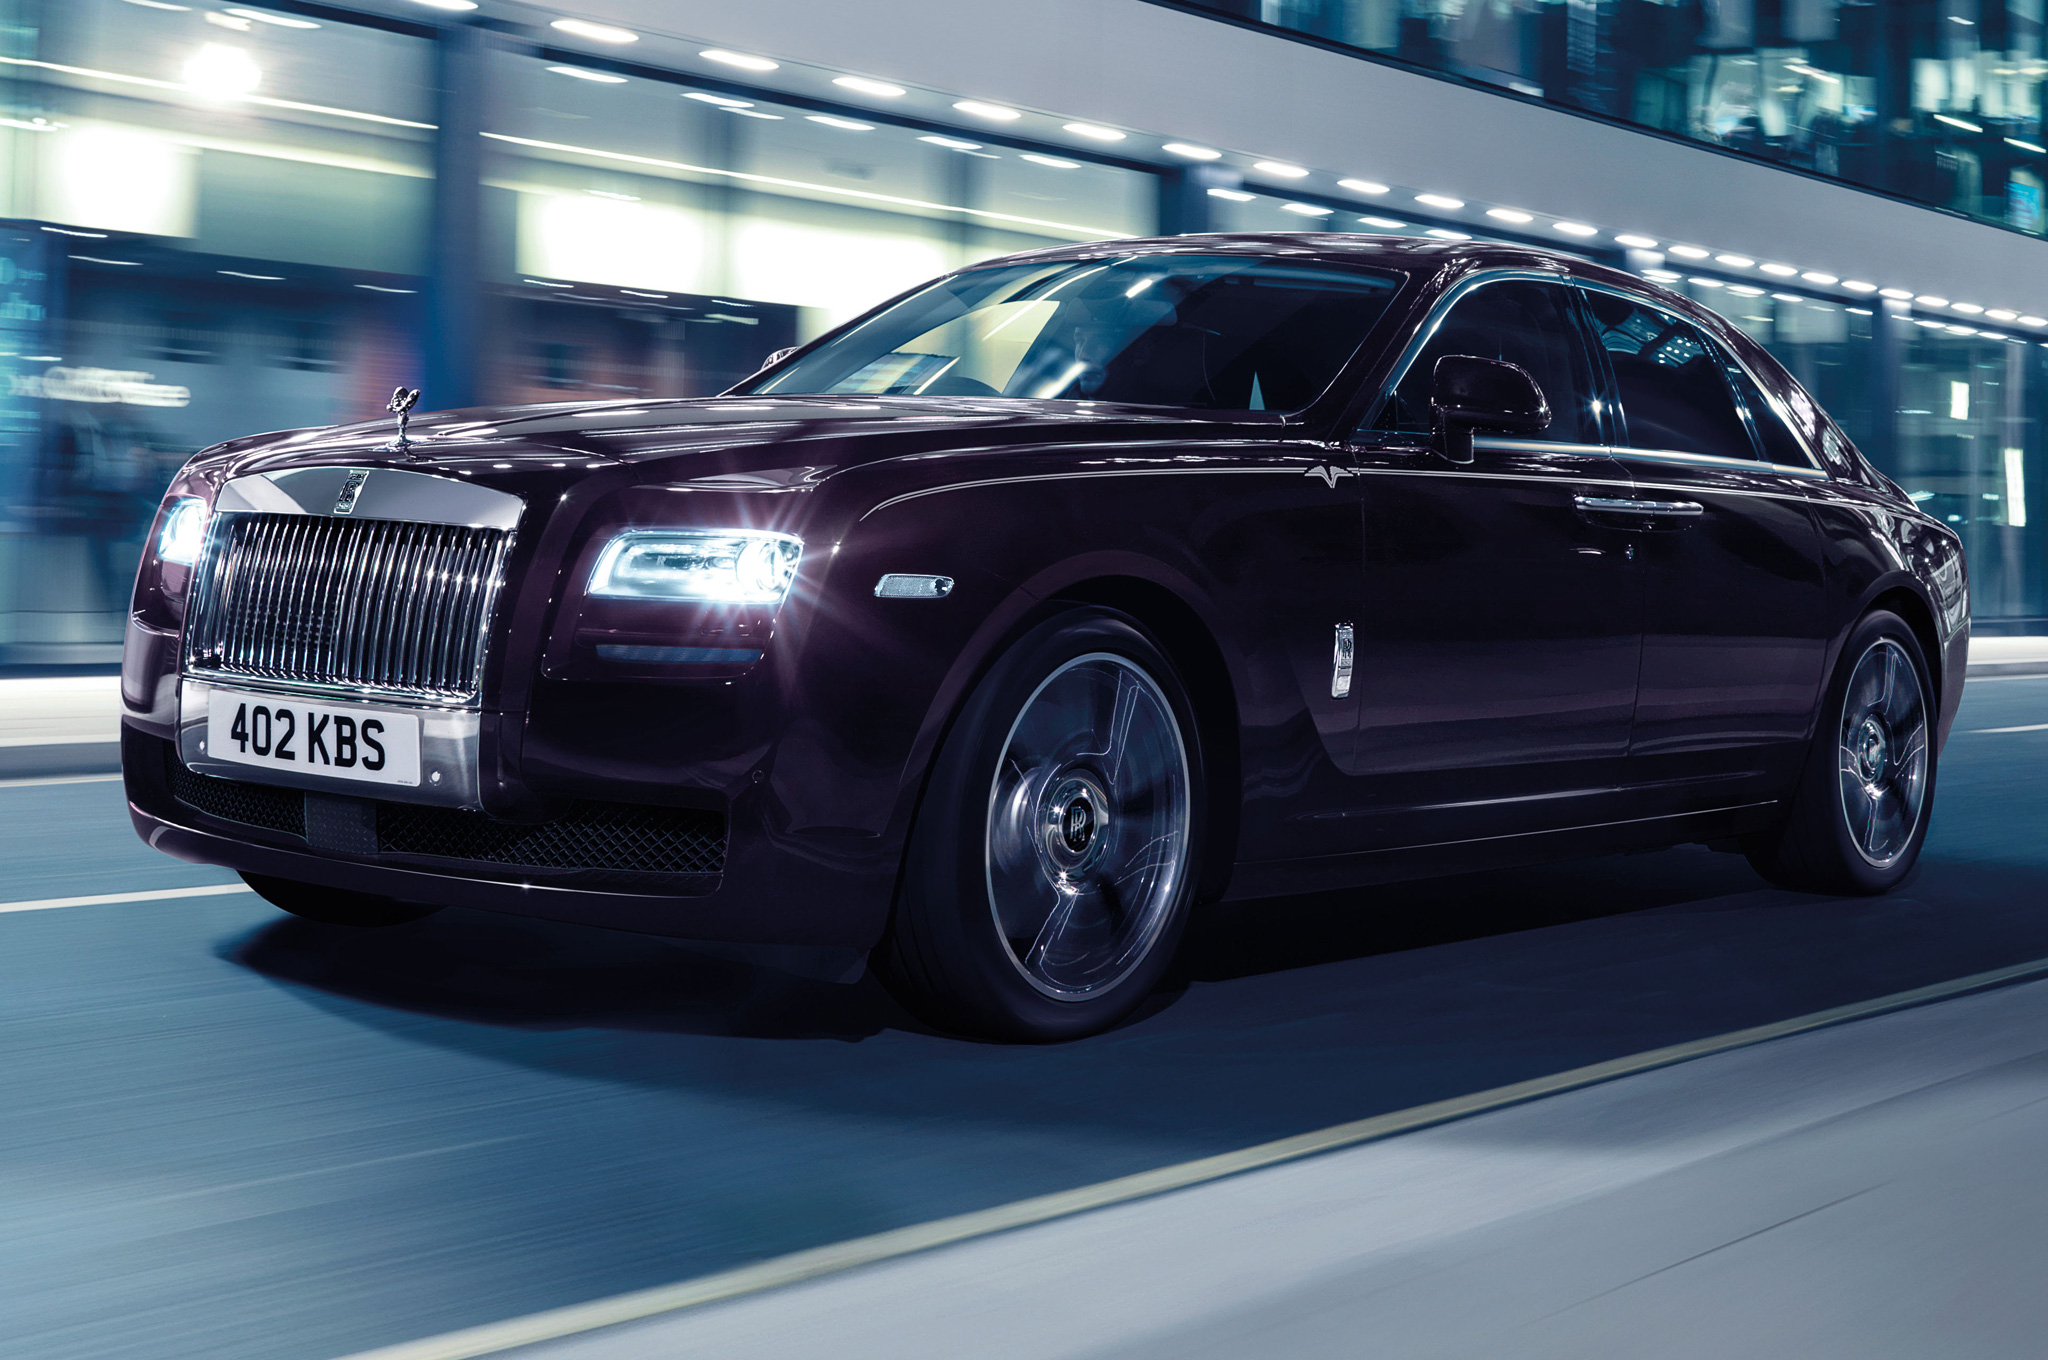 2014 Rolls royce Ghost #2